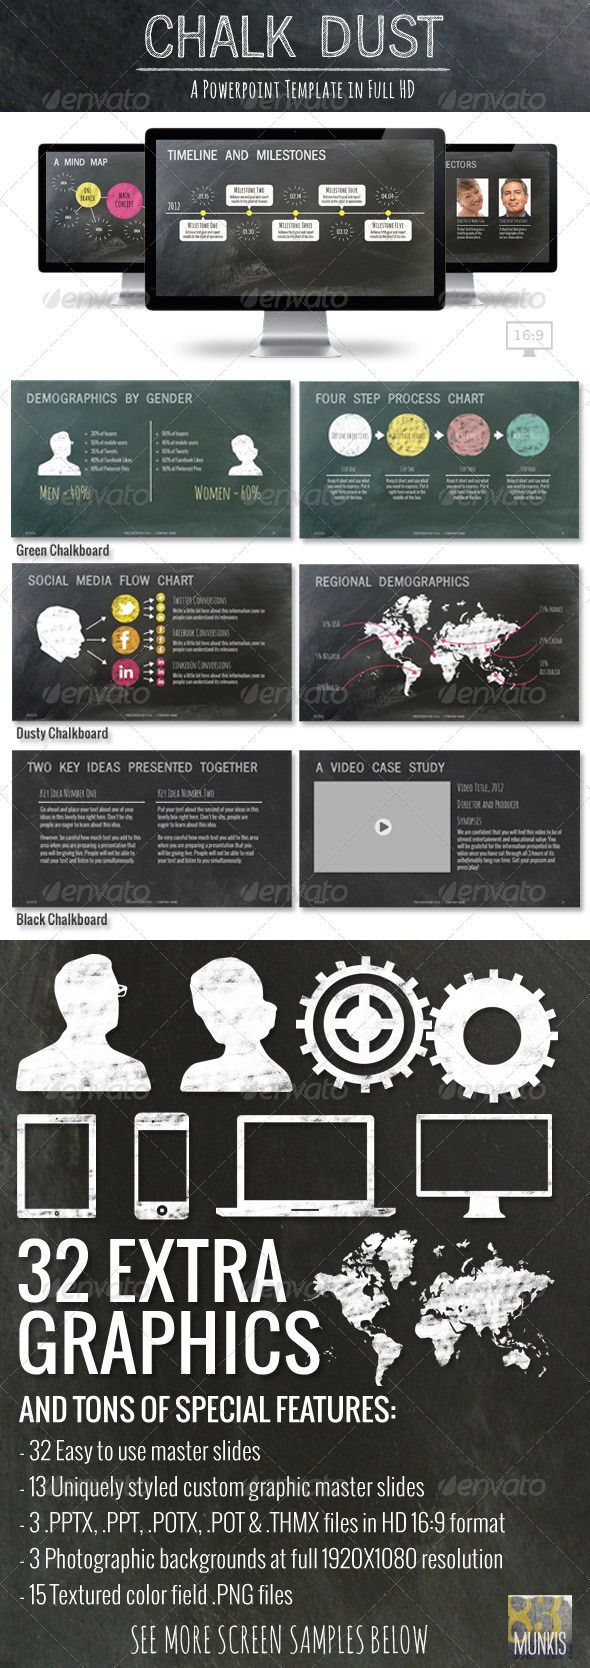 Chalk Dust Powerpoint Presentation Template - GraphicRiver Item for Sale